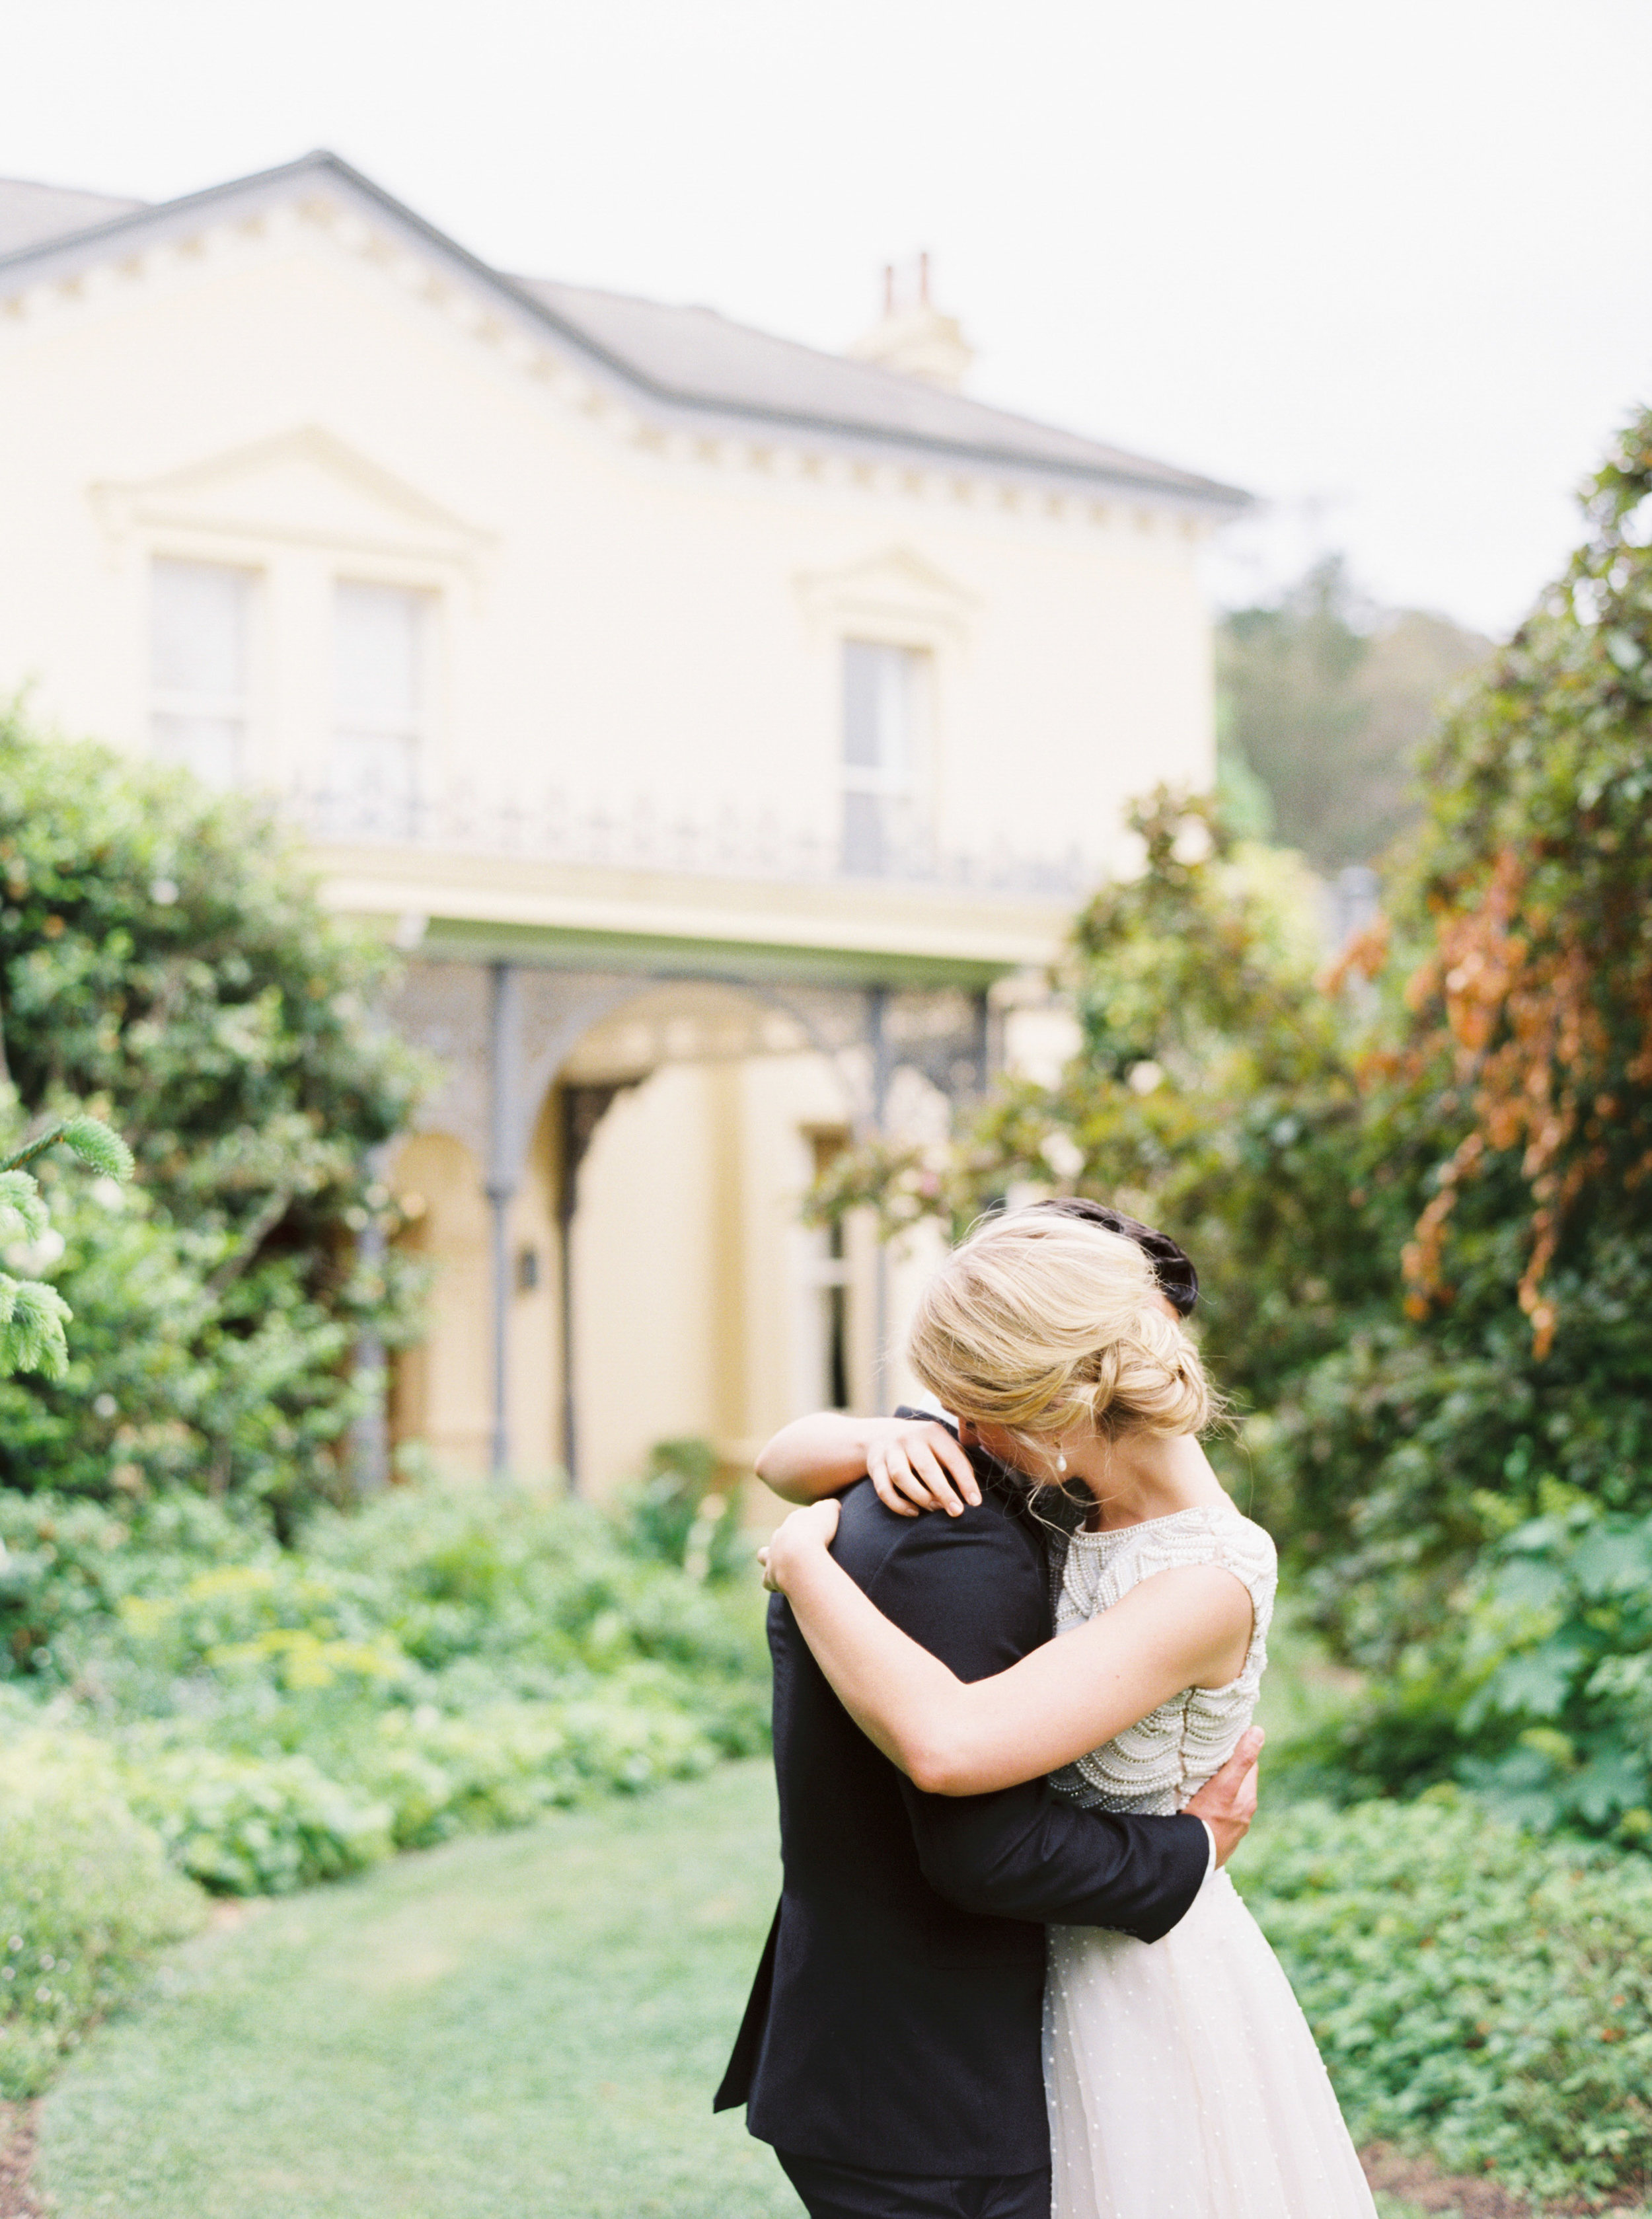 Timeless Southern Highland Wedding Elopement in Bowral NSW Fine Art Film Photographer Sheri McMahon-43.jpg